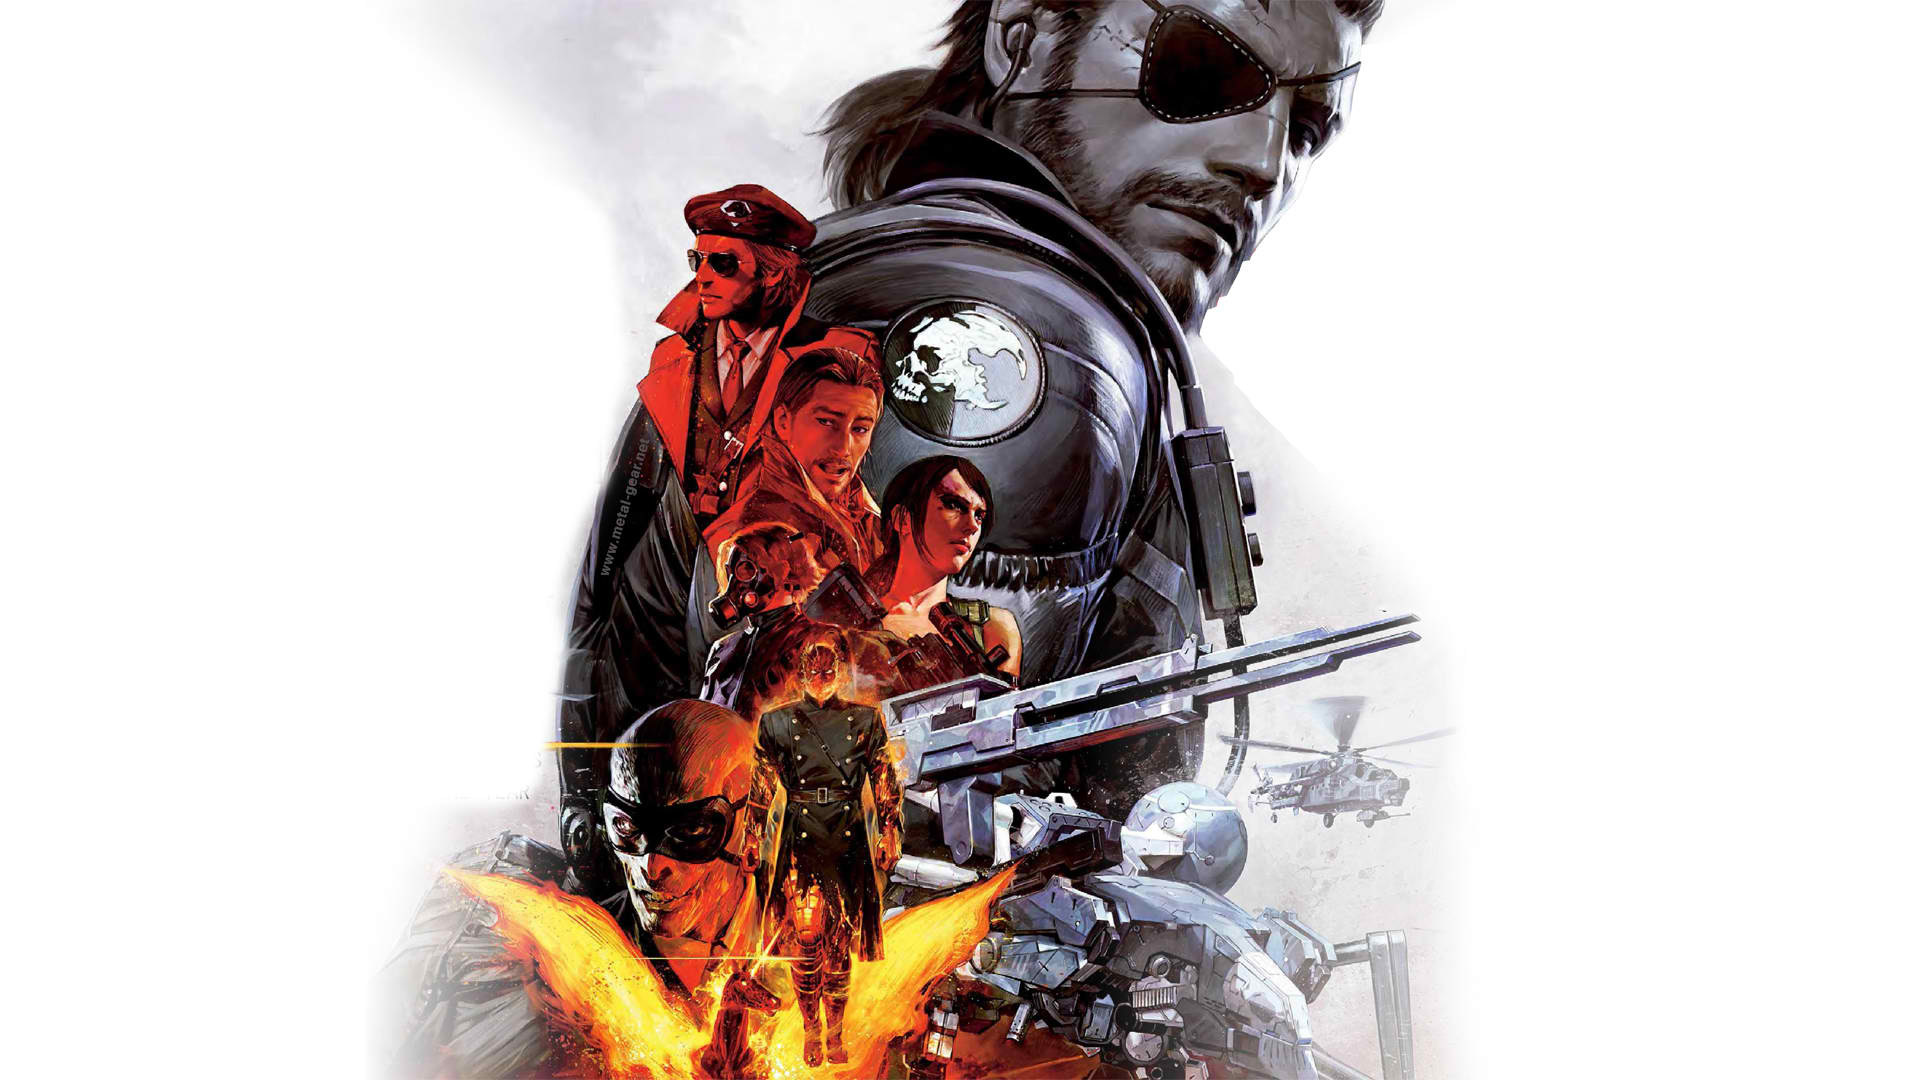 Free Download Metal Gear Solid V The Phantom Pain Wallpaper In